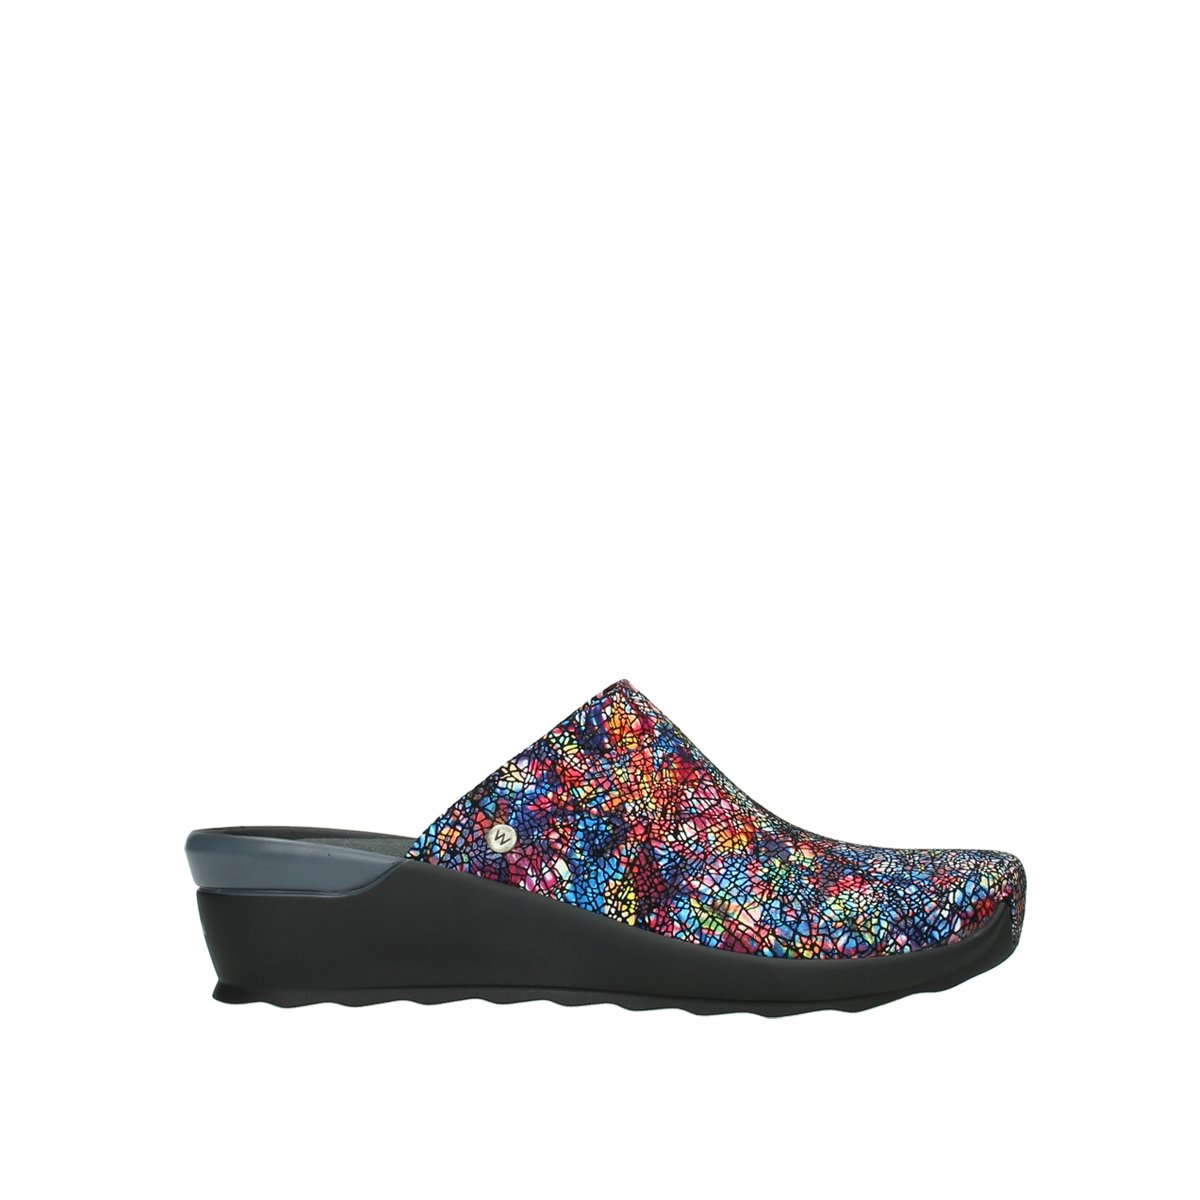 Wolky Comfort Sneakers Ewood B00WDWAH56 36 M EU|40970 Multi-black Mtallic Leather